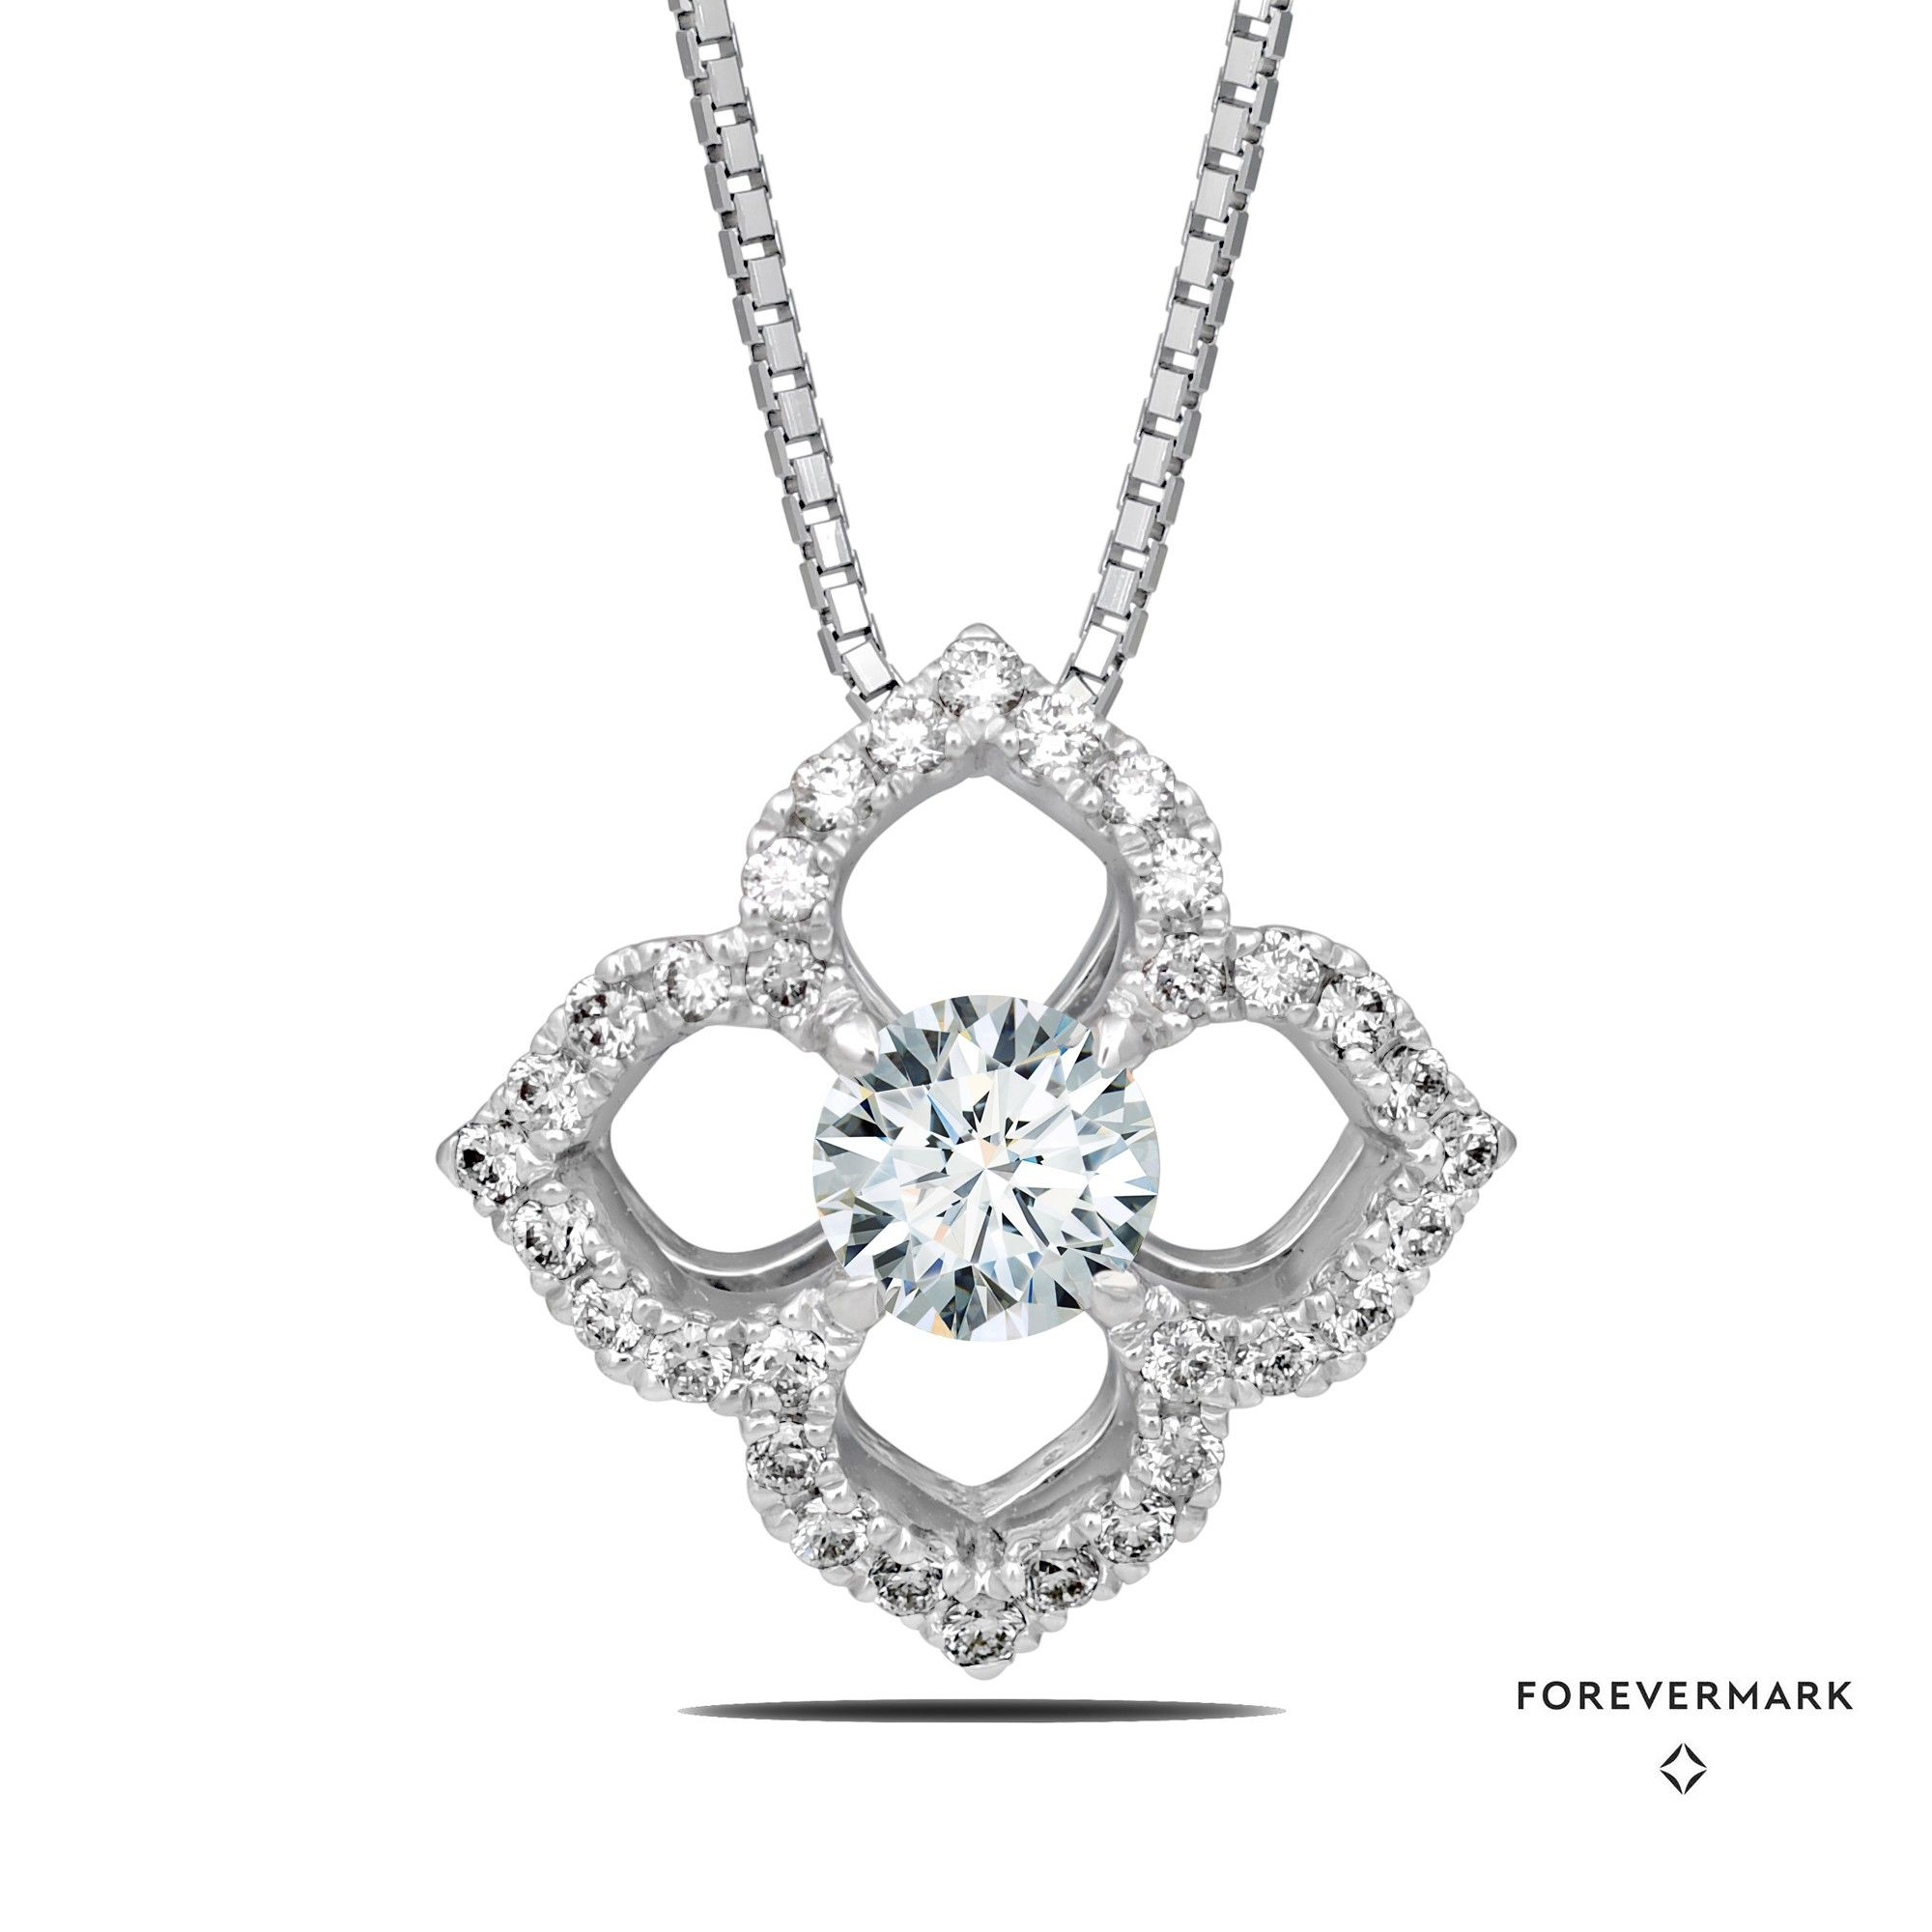 Stunning Forevermark Diamond Lotus Flower Necklace In 18kt White